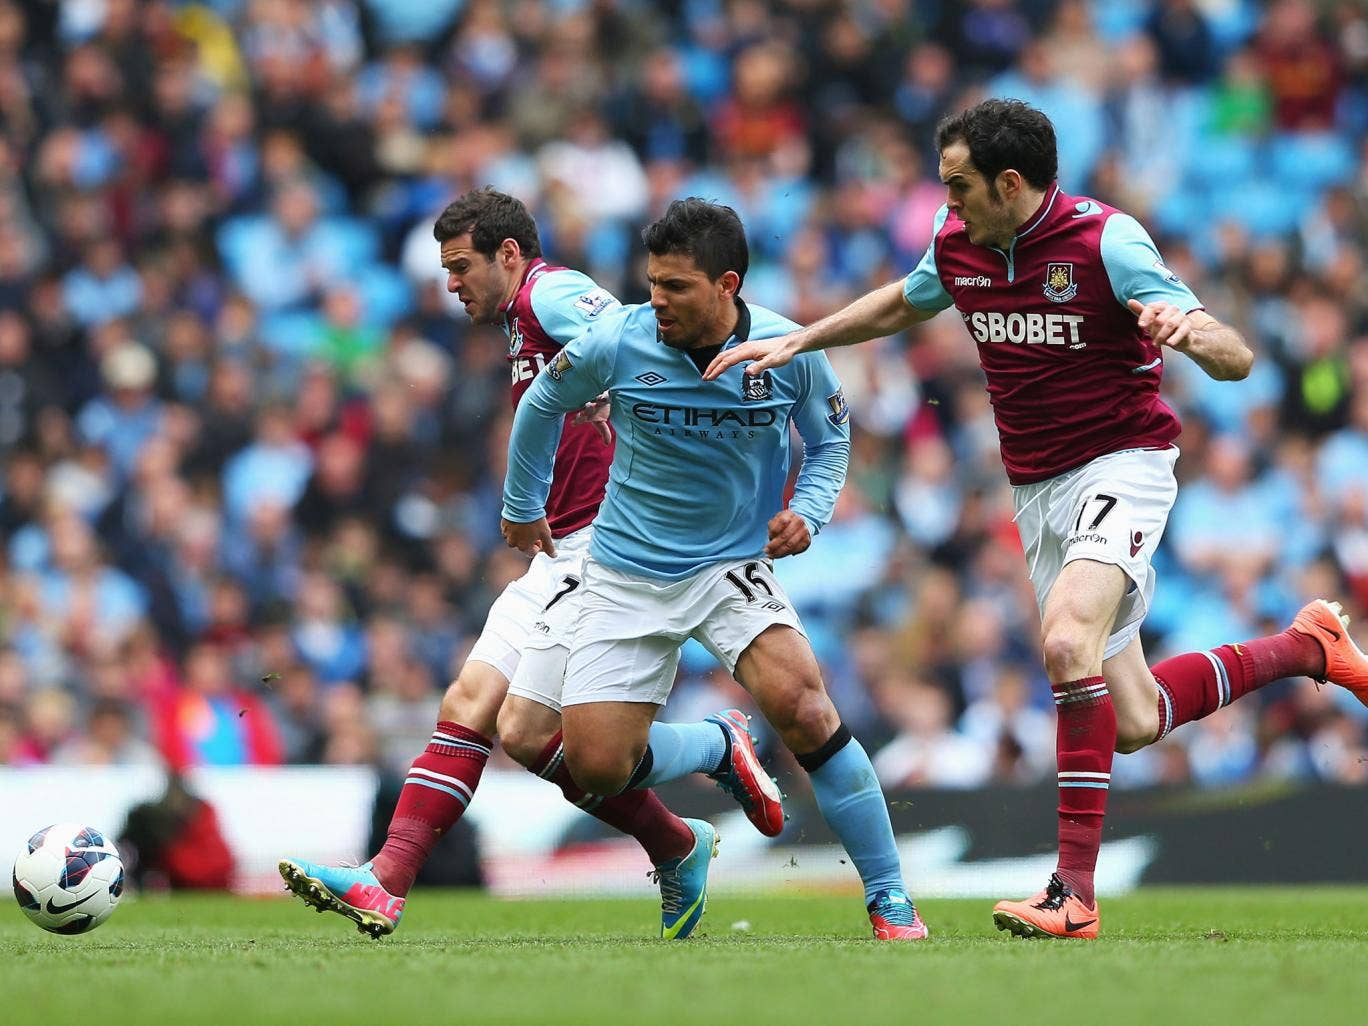 Sergio Aguero of Manchester City is challenged by Matt Jarvis (L) and Joey O'Brien of West Ham United